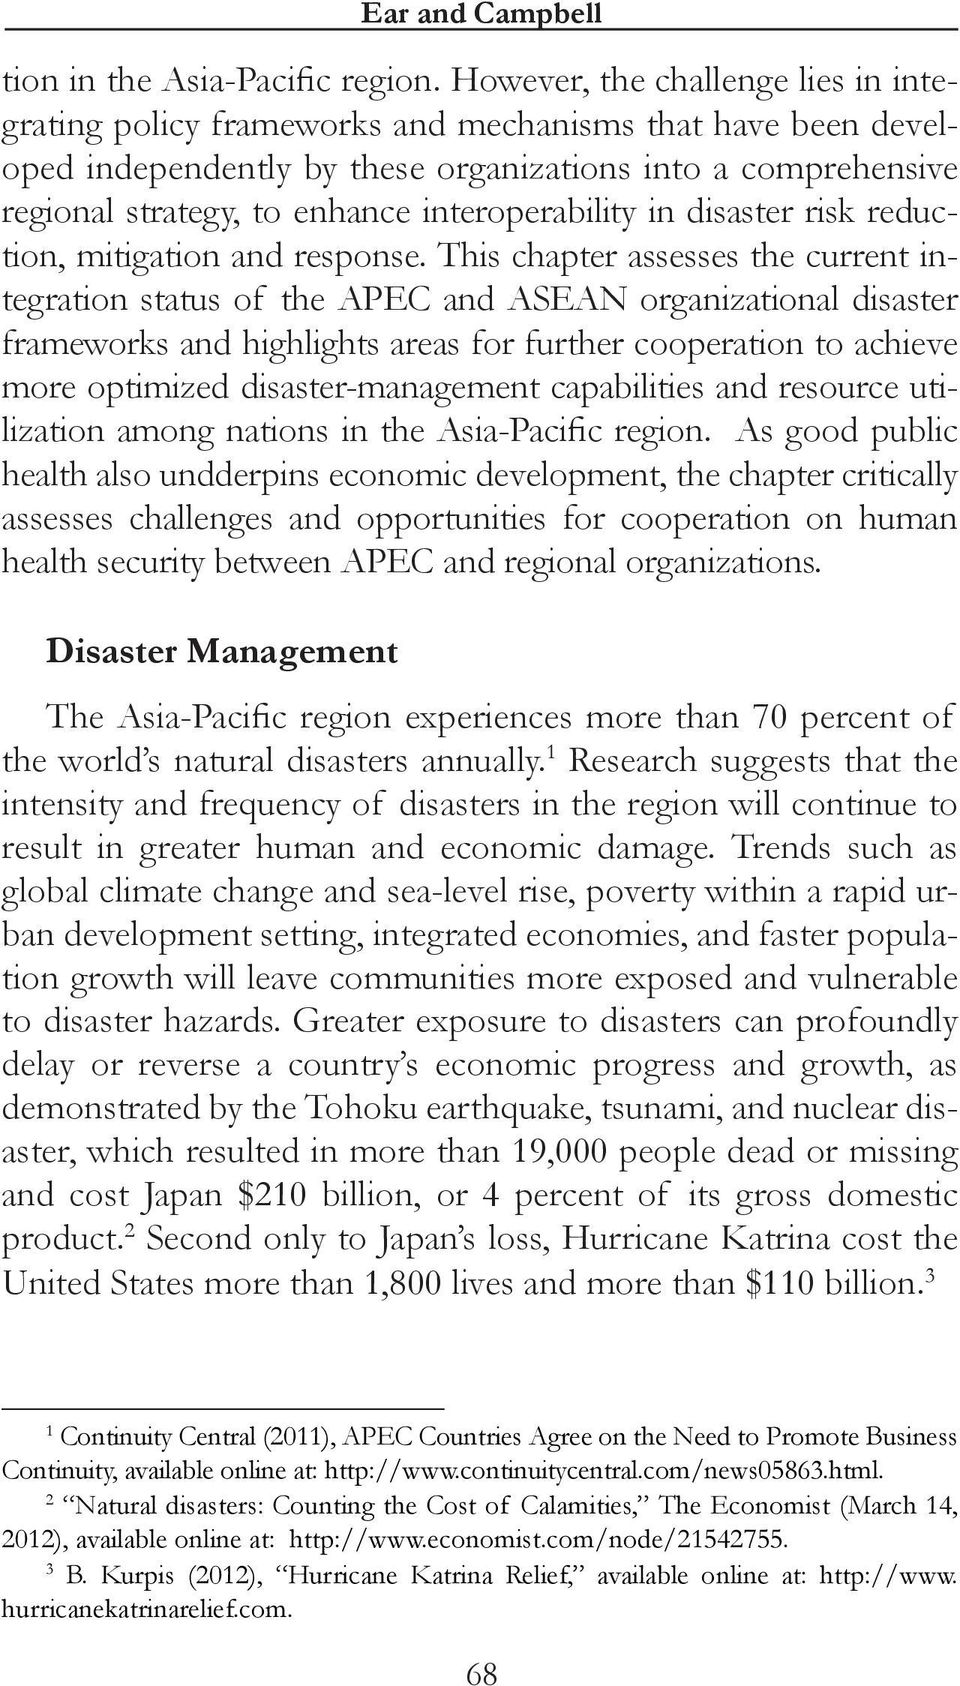 interoperability in disaster risk reduction, mitigation and response.